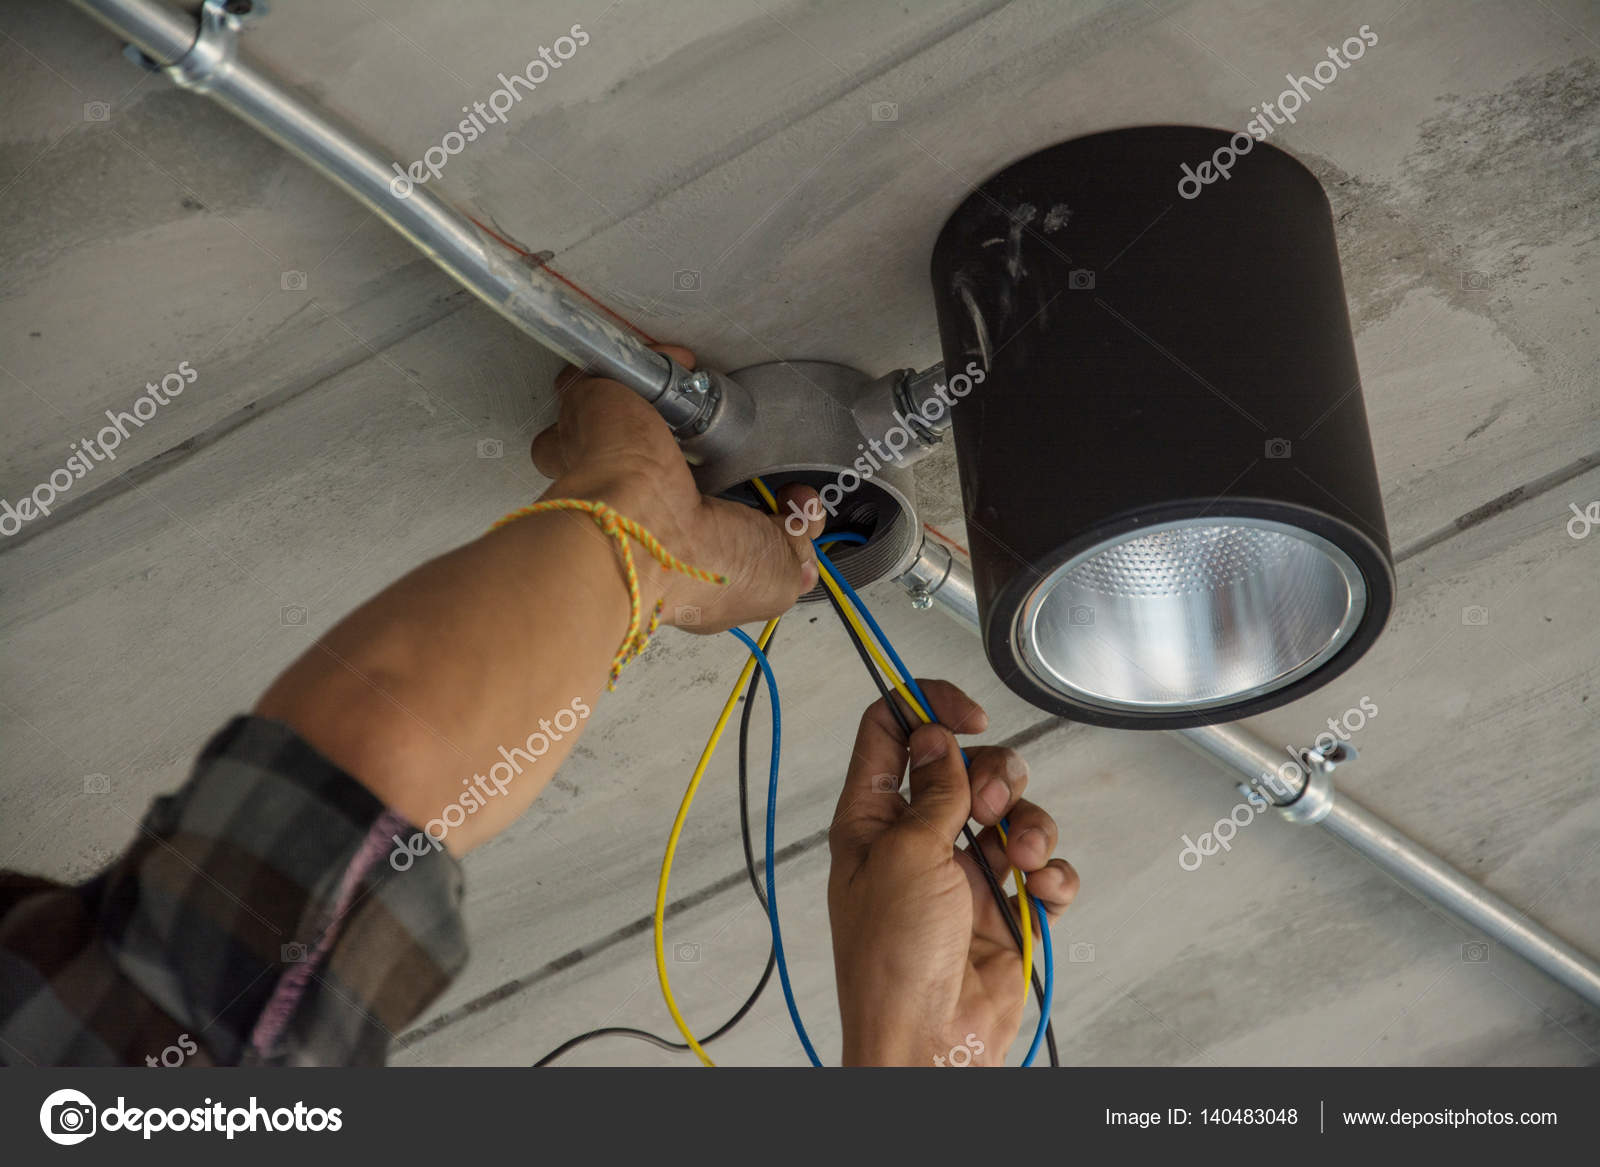 Electrical Cable In Galvanized Conduit Pipe Connection And Ceili Electricwireconduitjpg Stock Photo